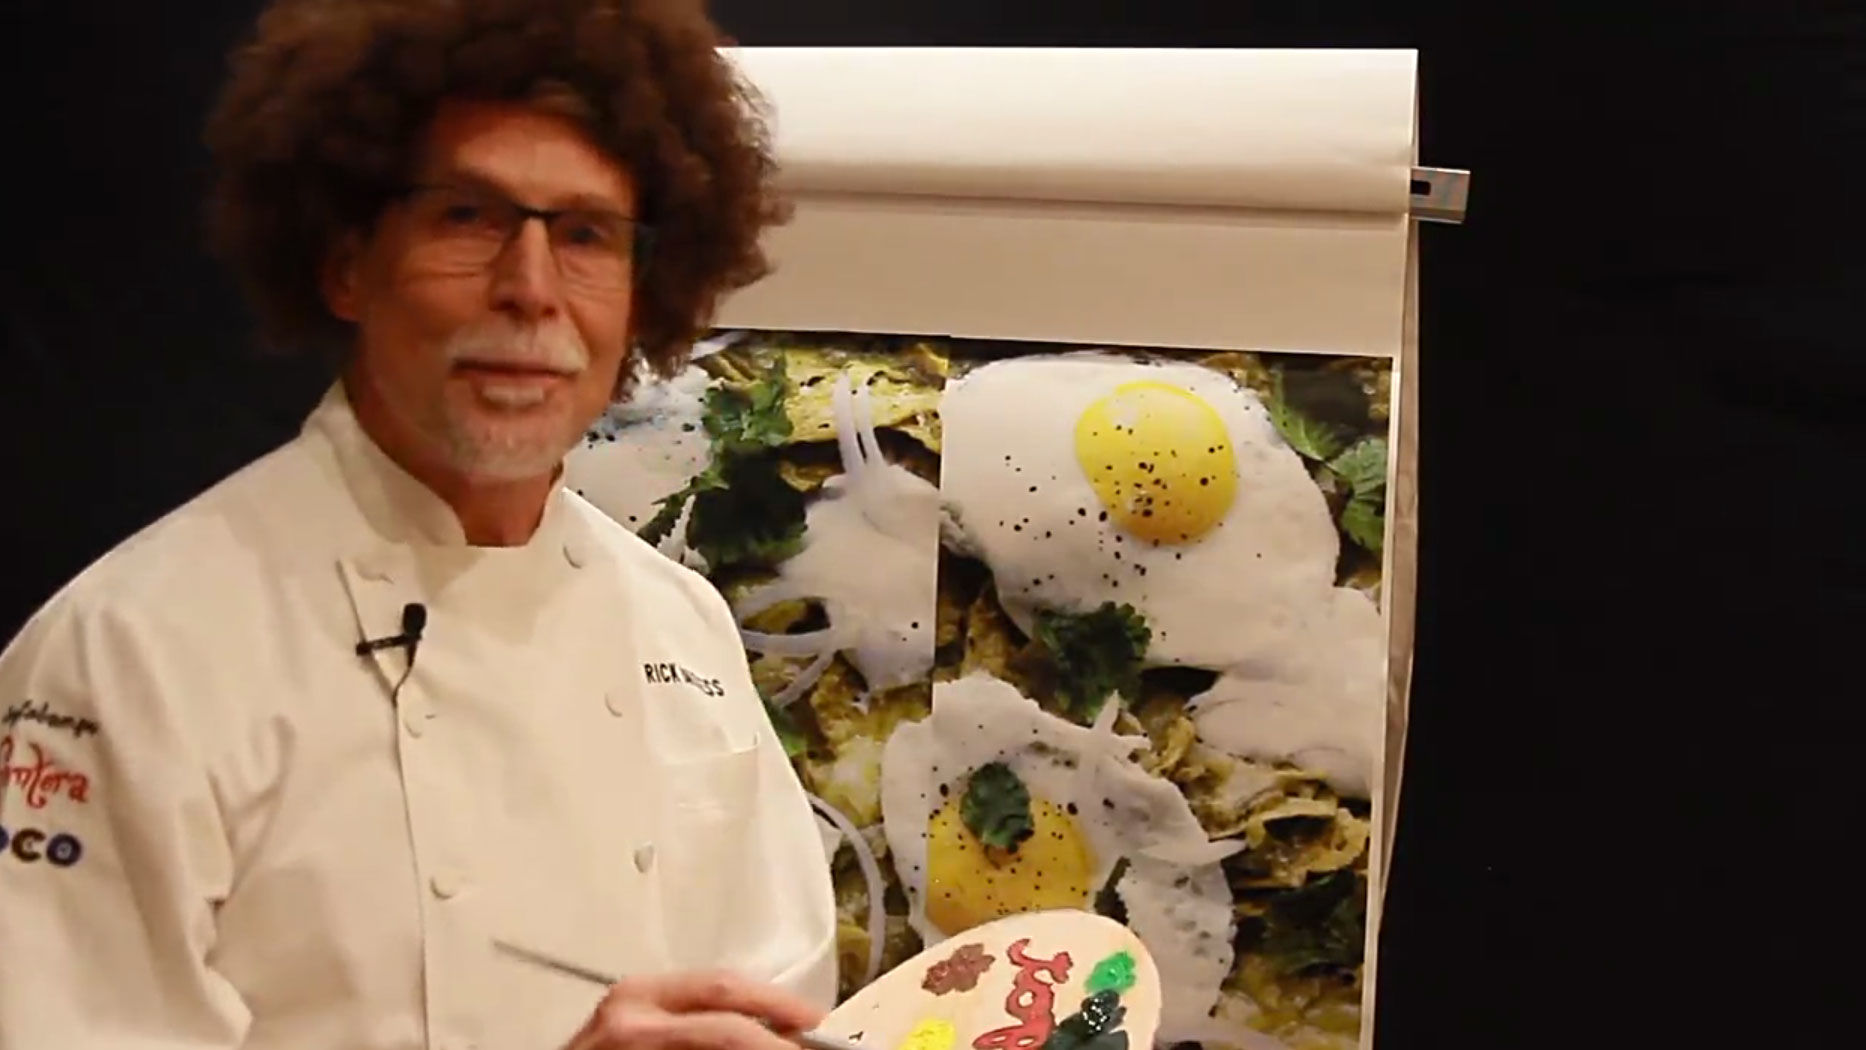 VIDEO1115-FT-rick-bayless-bob-ross.jpg